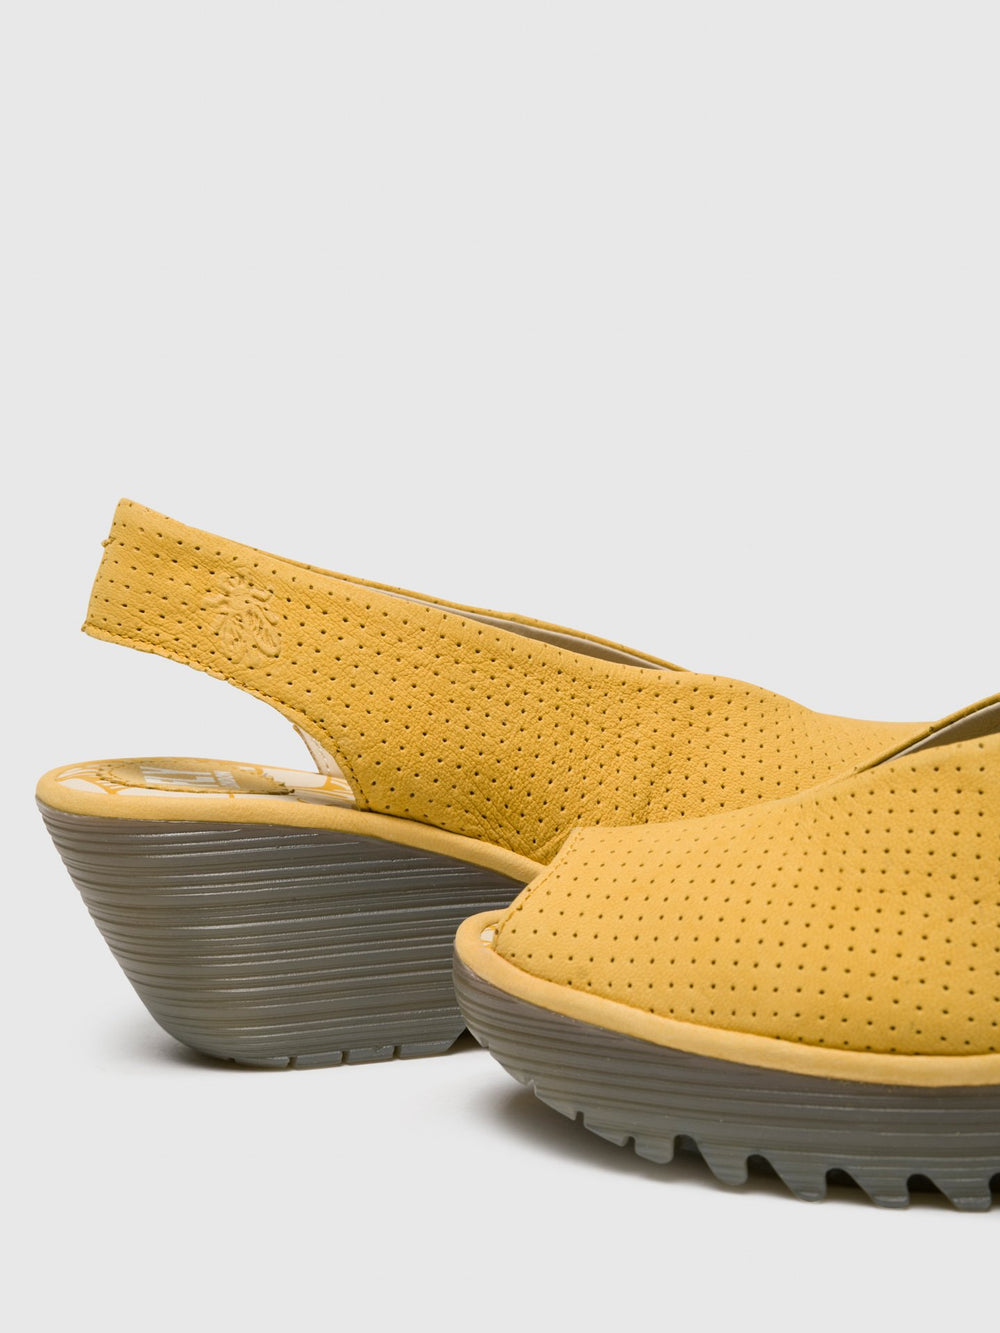 Sling-Back Sandals YAZU736FLY BUMBLEBEE